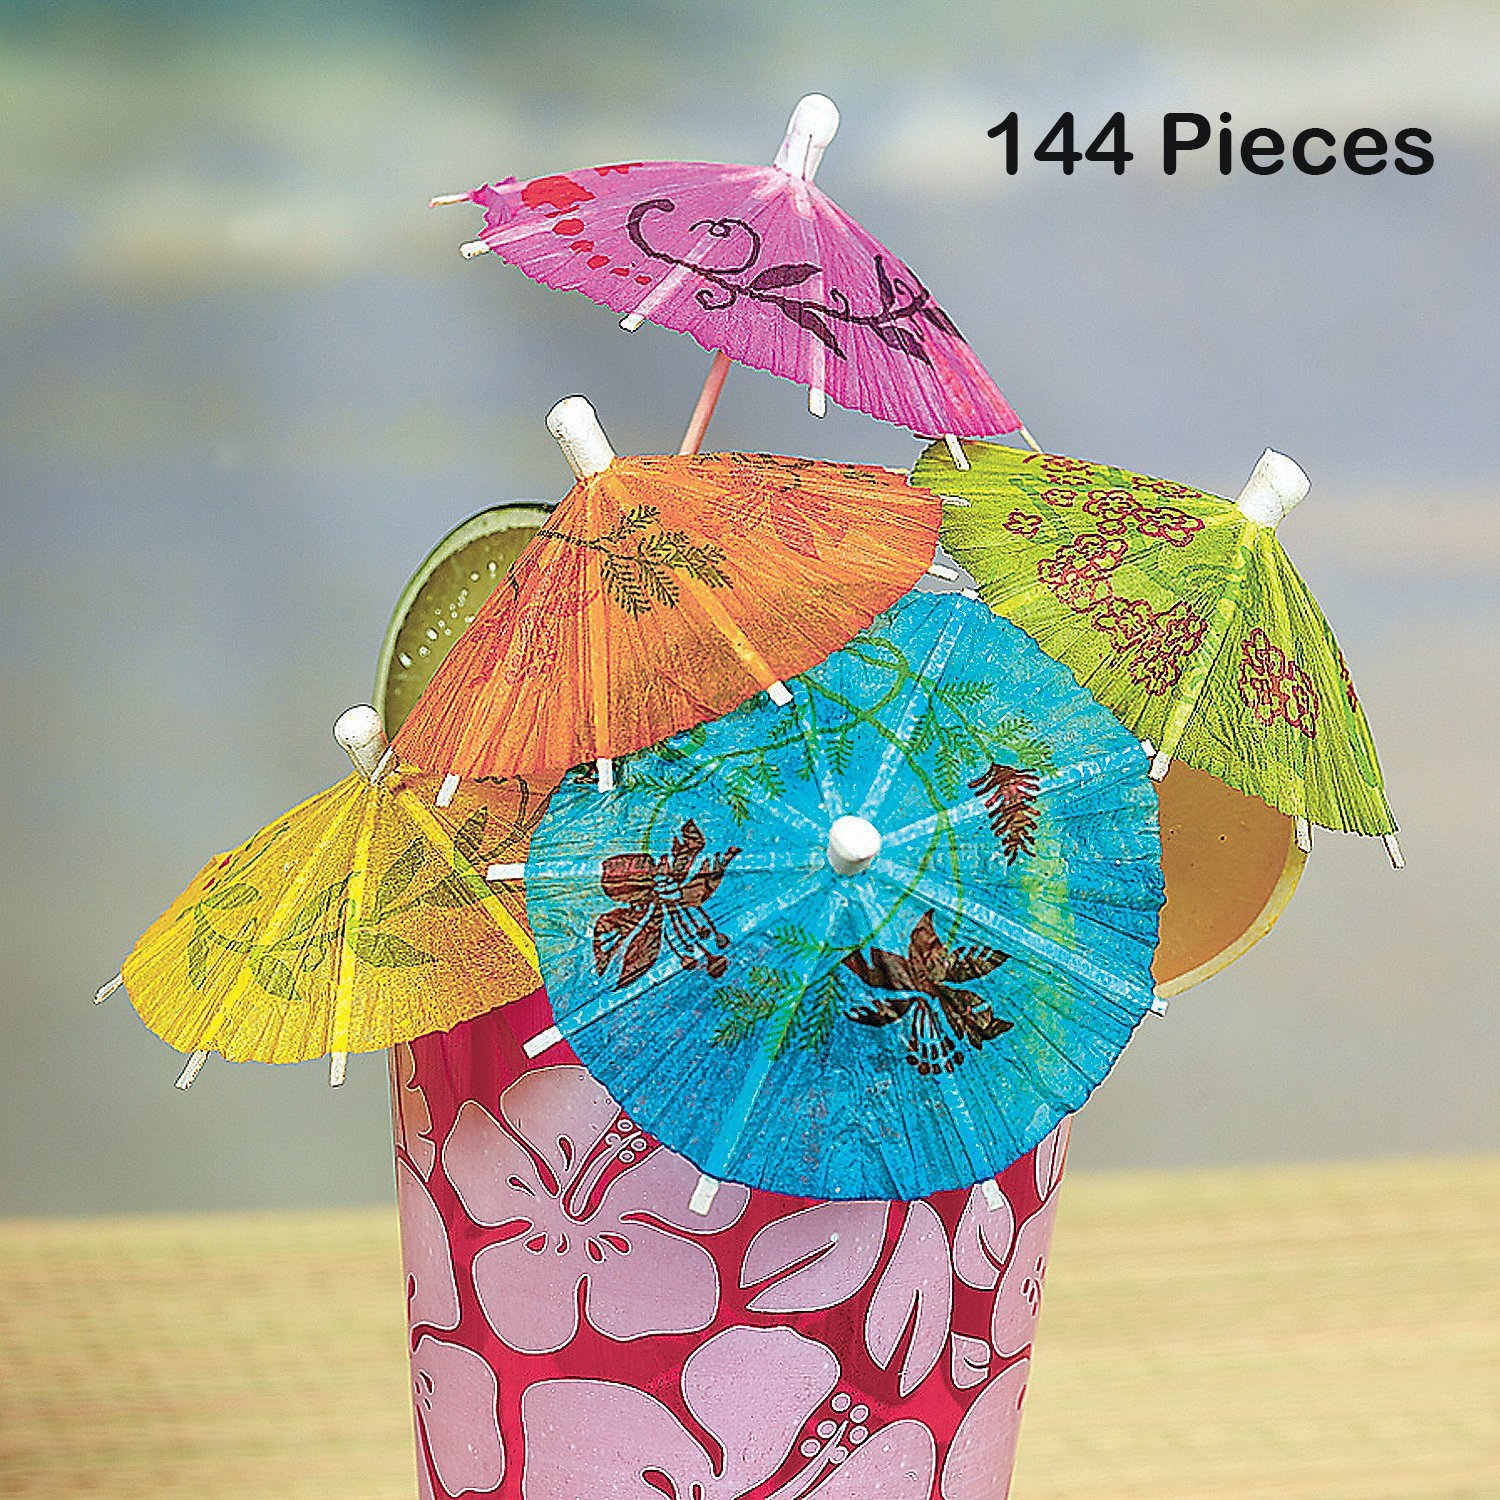 Cocktail Umbrellas On Wooden Stick – 144 Pieces – Umbrella 2'', Stick 4'' - Assorted Colors And Designs Drink Umbrellas Parasols – Caribbean, Hawaiian, Luau, Tropical, Bar, Parties – By Kidsco